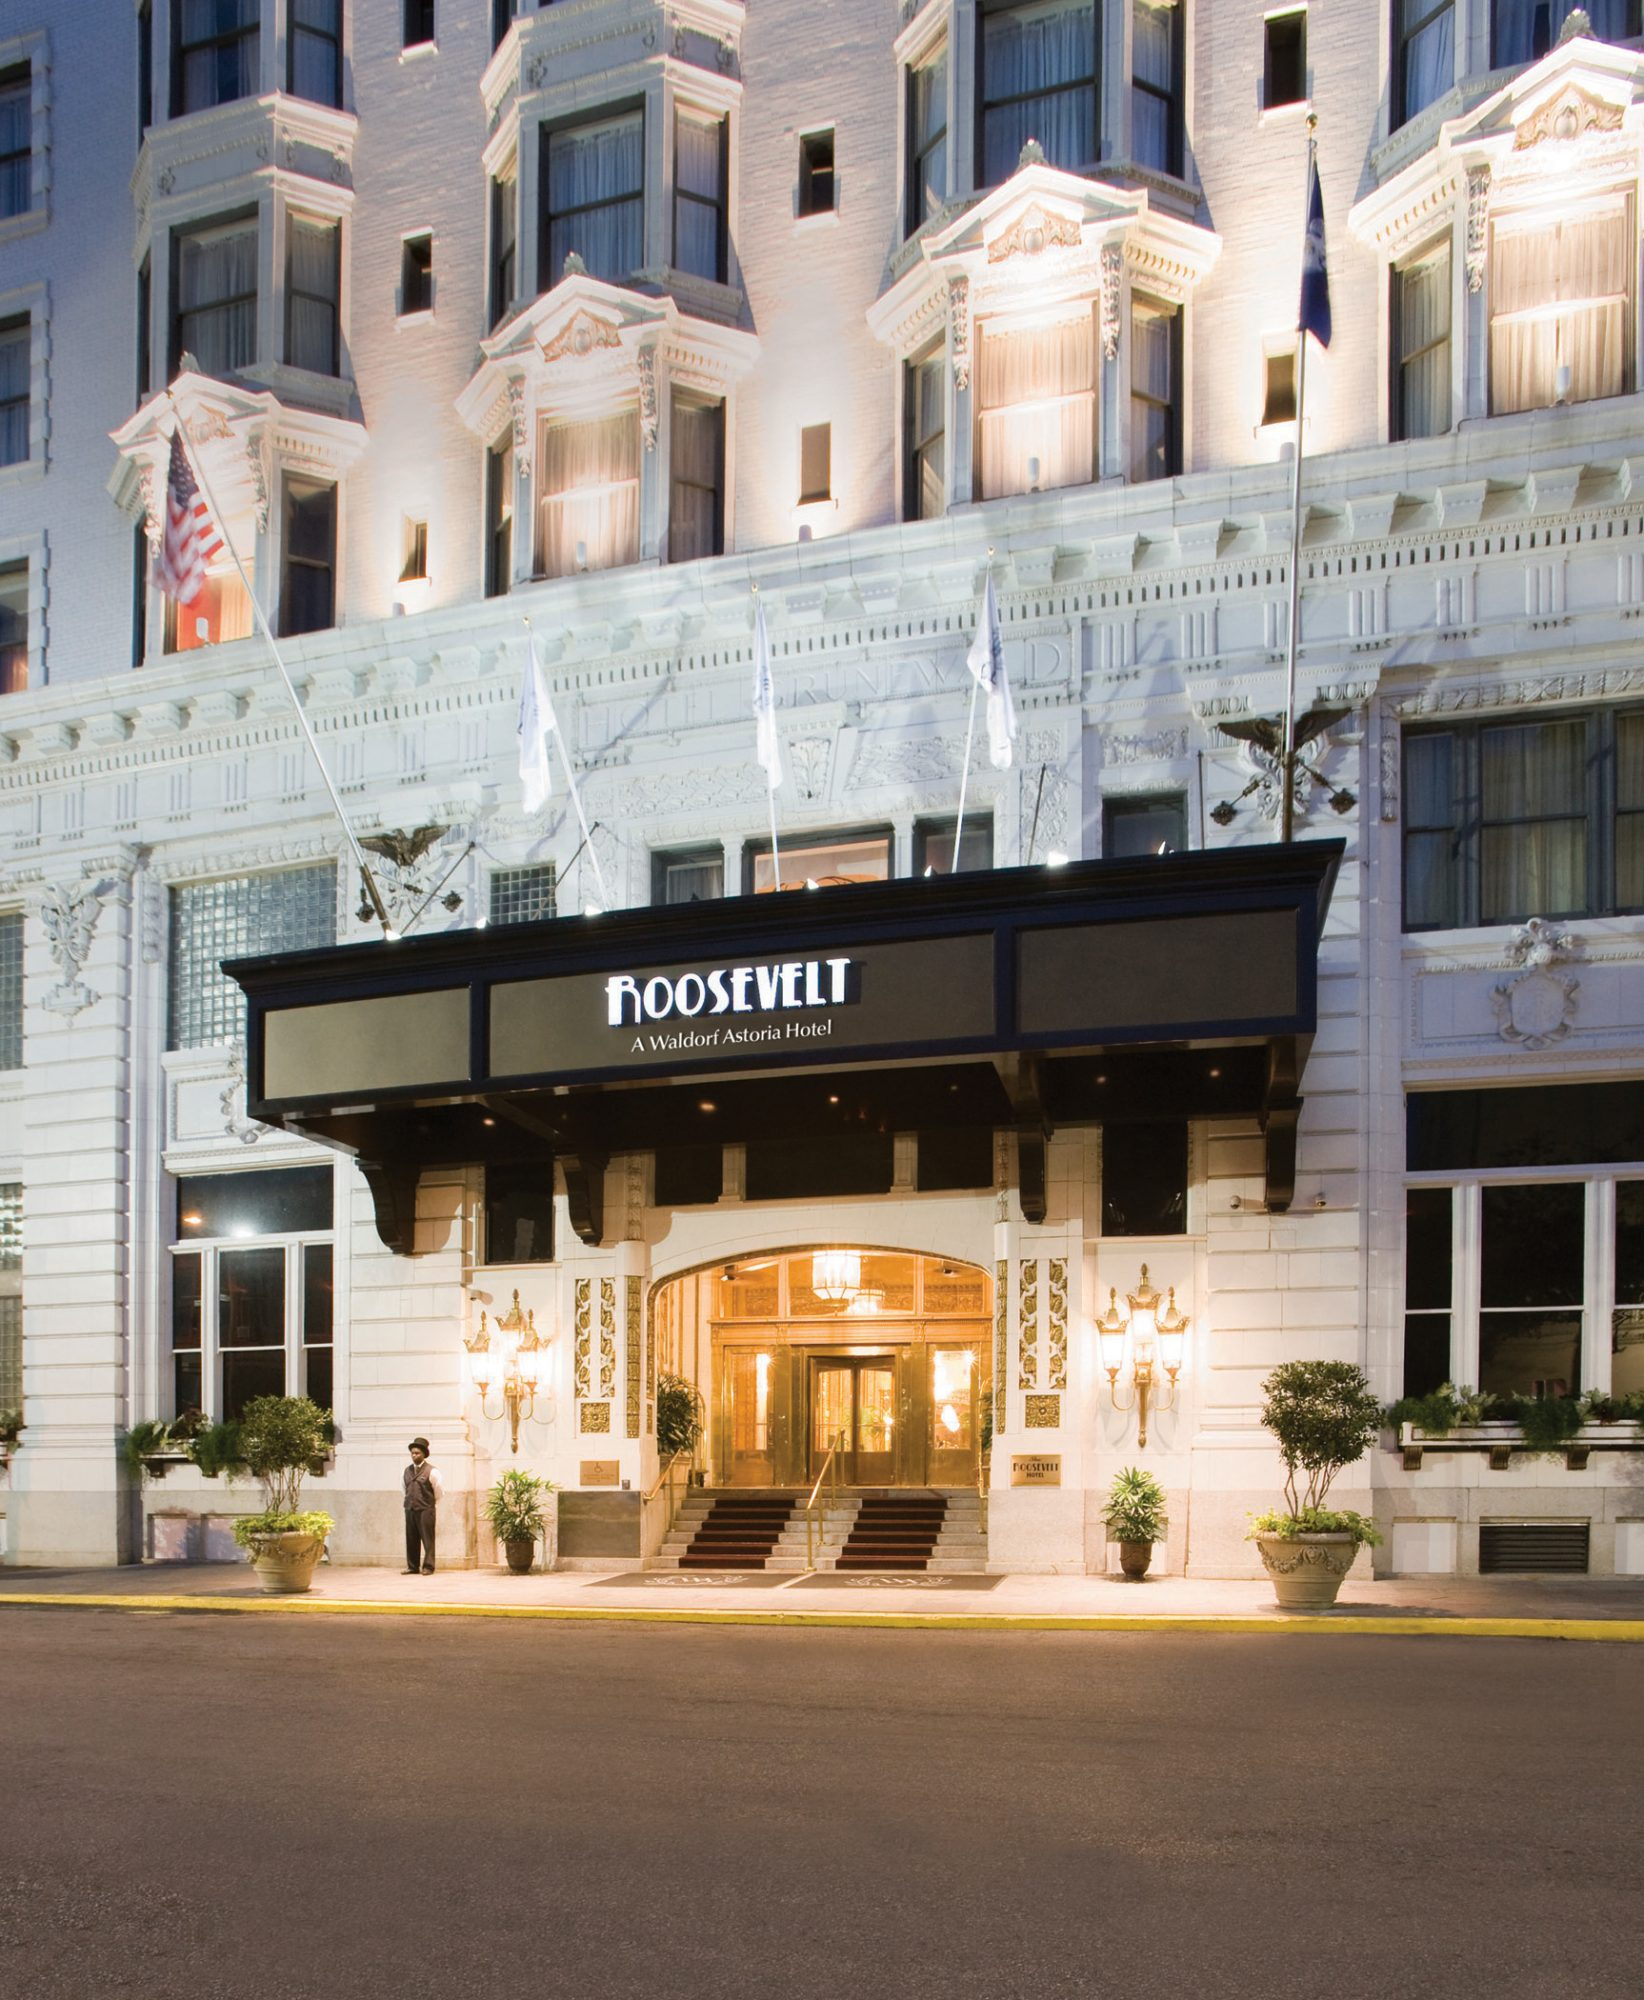 10. The Roosevelt New Orleans